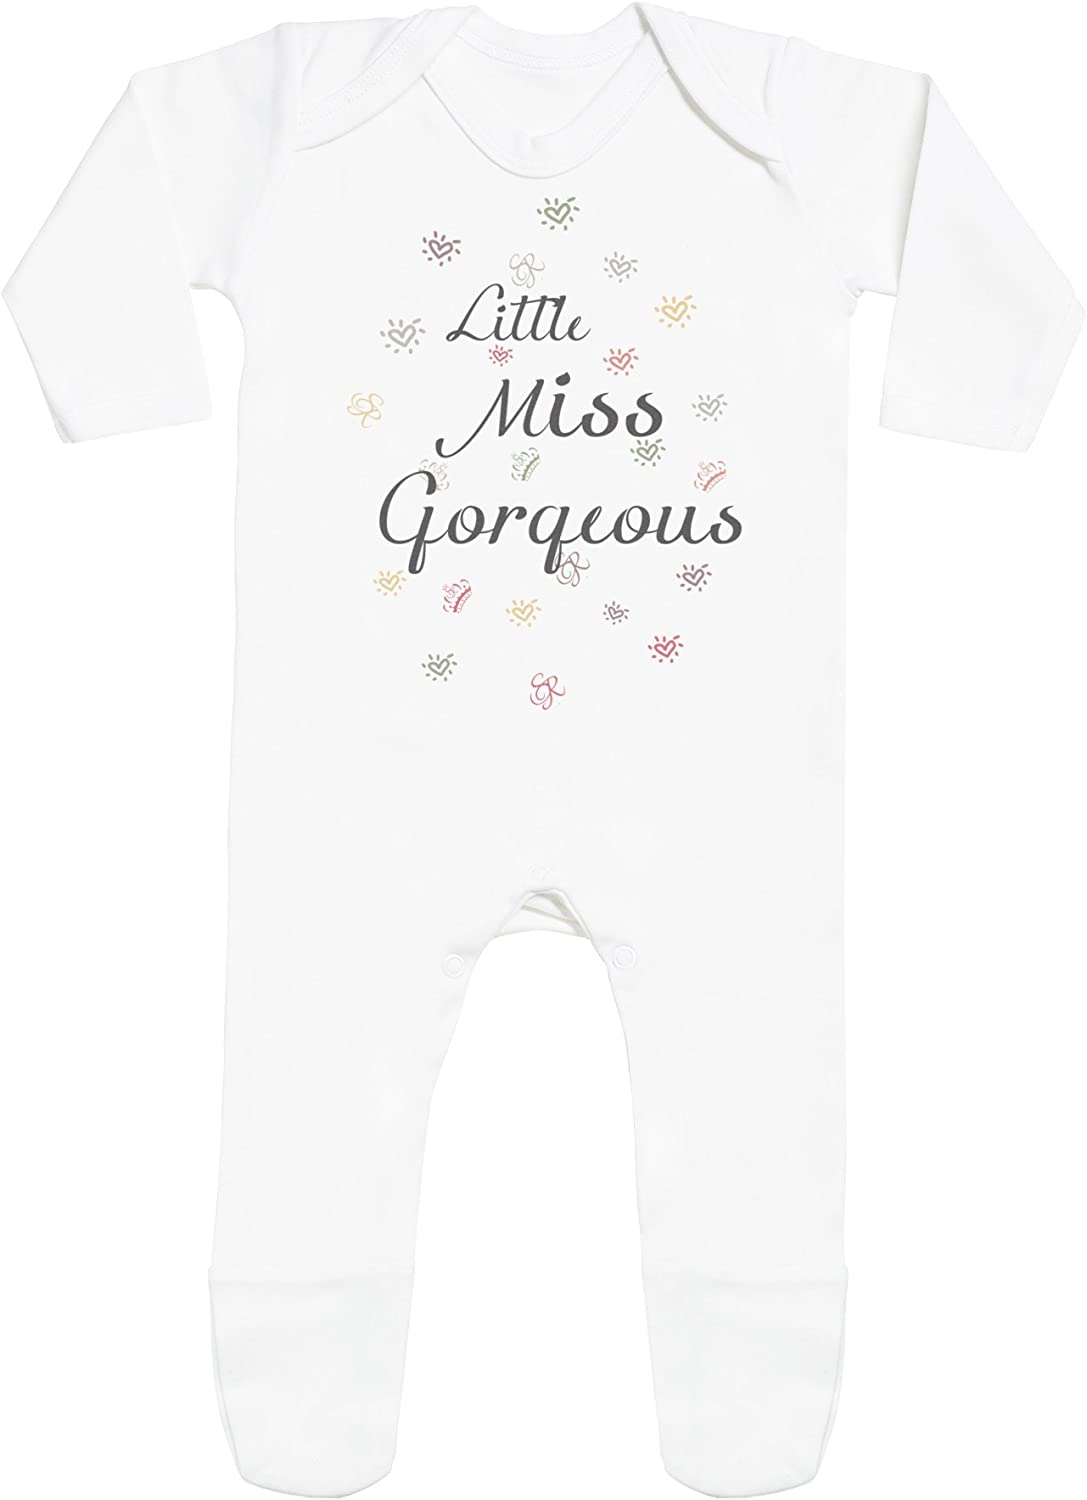 Personalised Baby Romper Personalised Your Text Here Baby Rompersuit SR